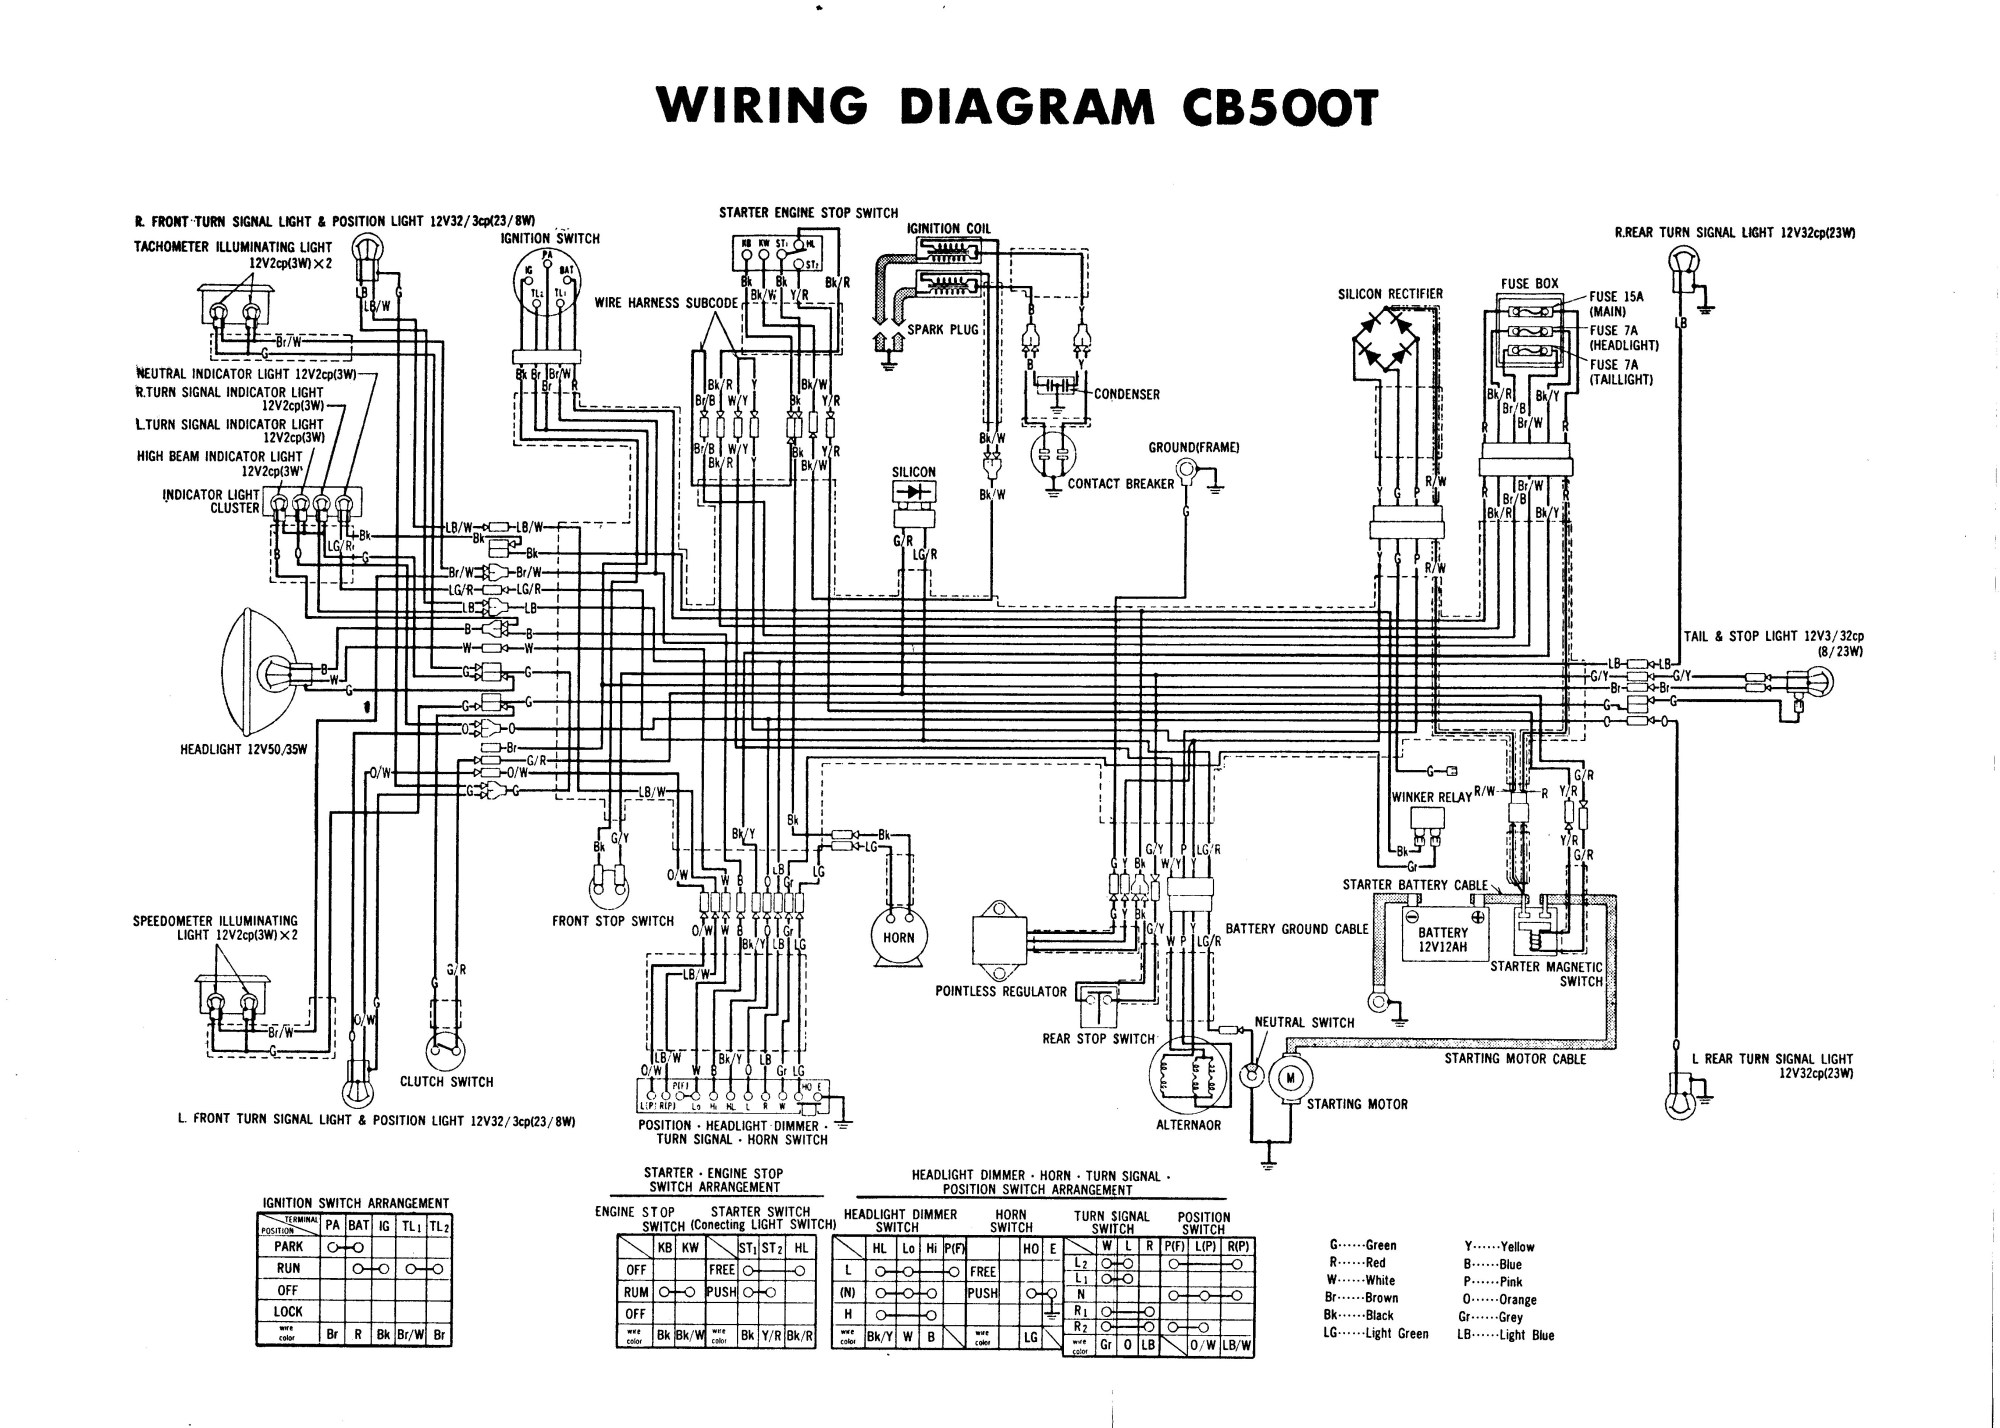 hight resolution of 12 fiat 500 wiring diagram wiring diagram origin 2012 chevy sonic wiring diagram 2012 fiat 500 wiring diagram